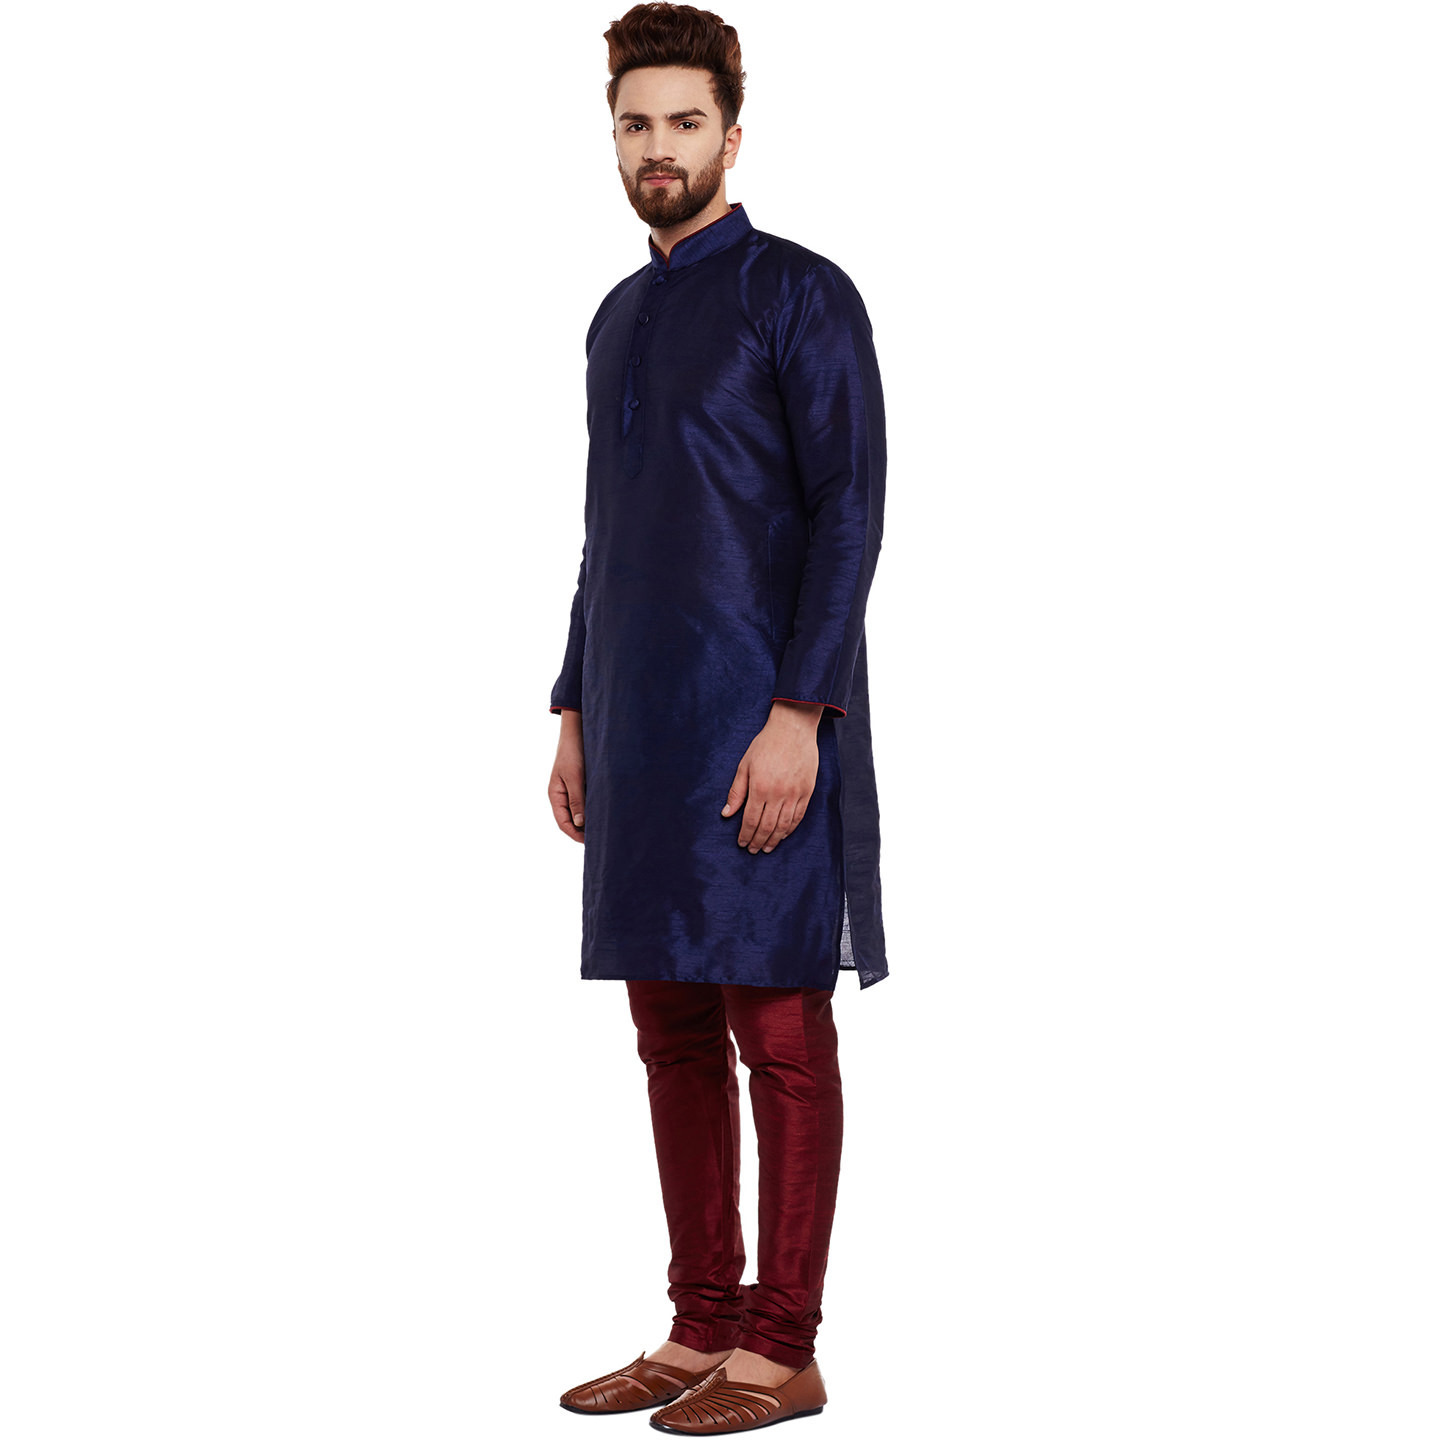 Mens Dupion Silk Royal blue Solid Designer Kurta Churidaar Set Long Sleeve Ban collar Regular Fit